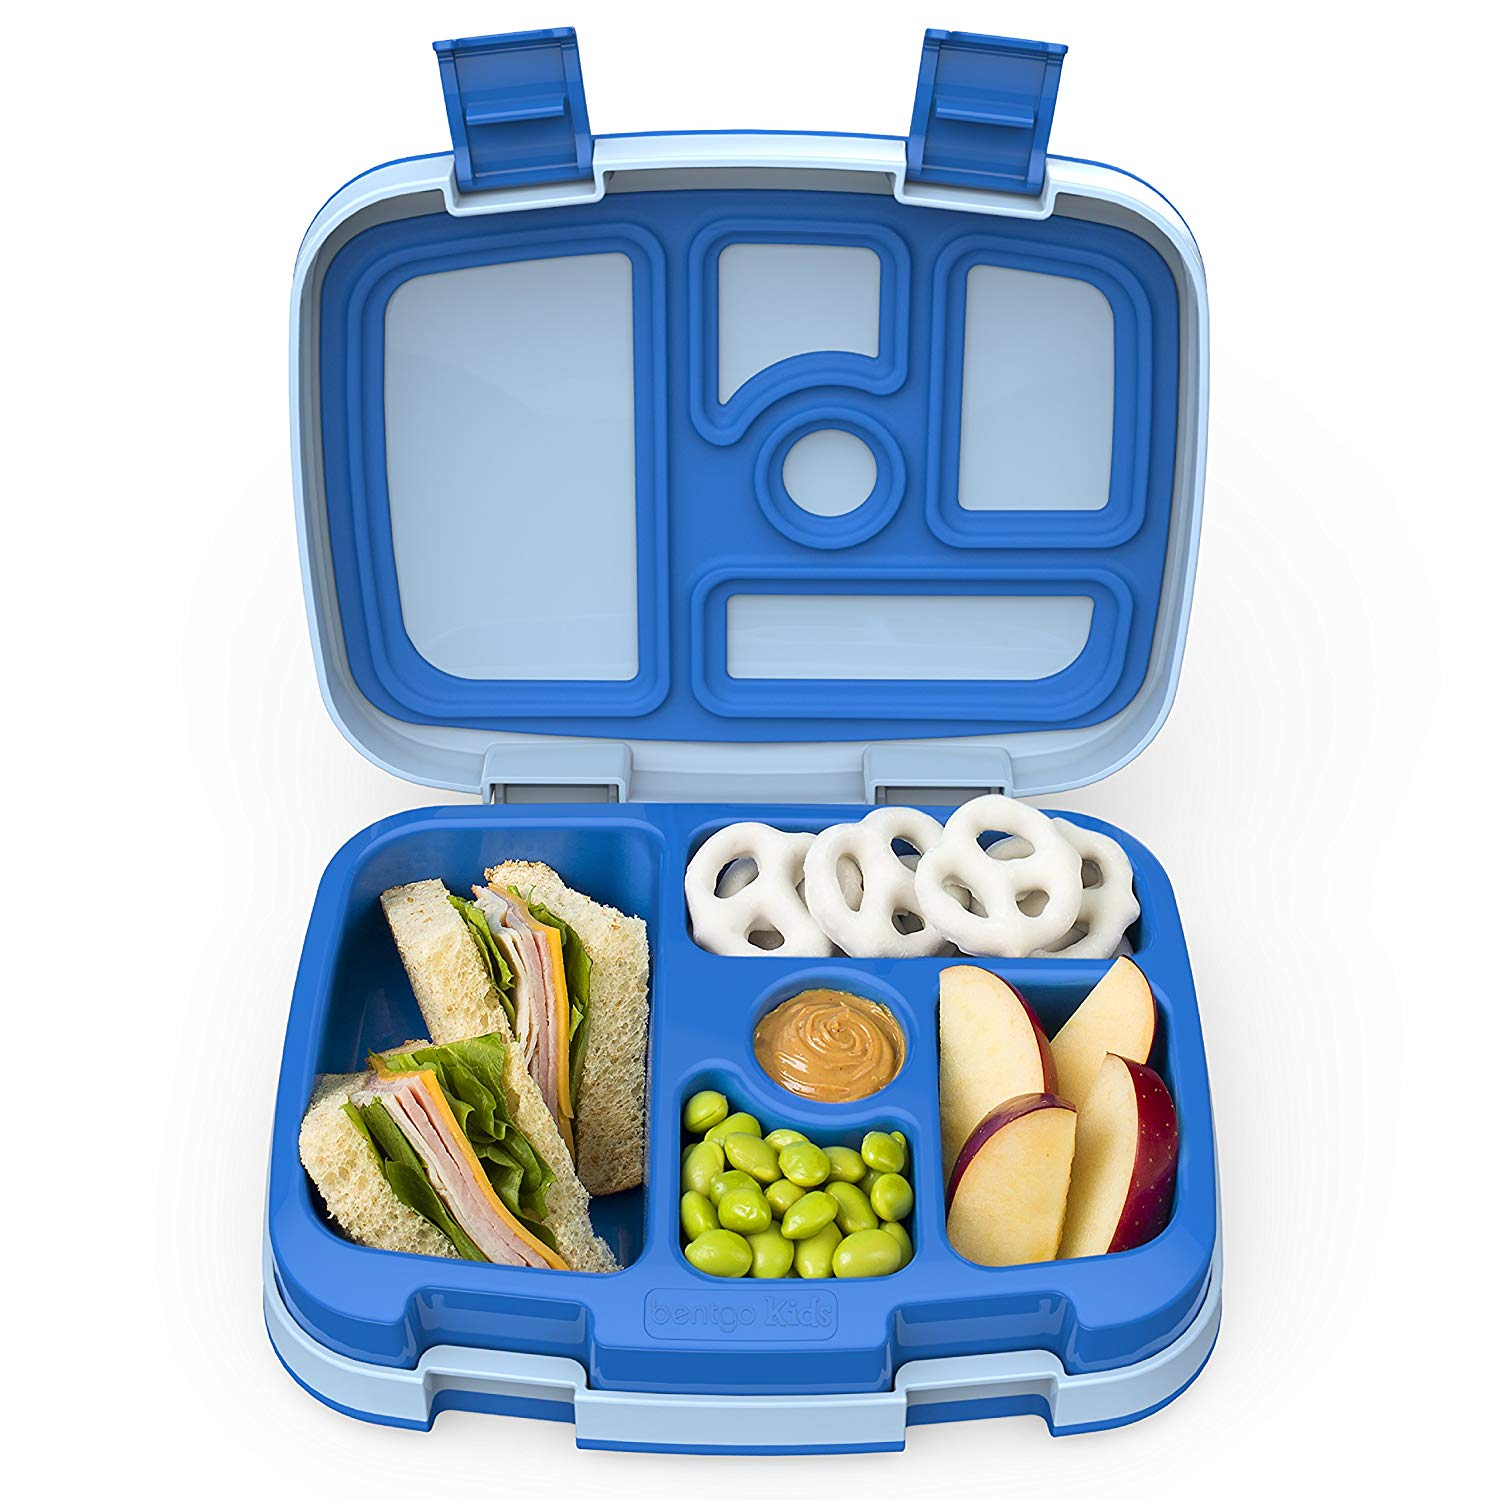 A heavy duty meal container for kids.